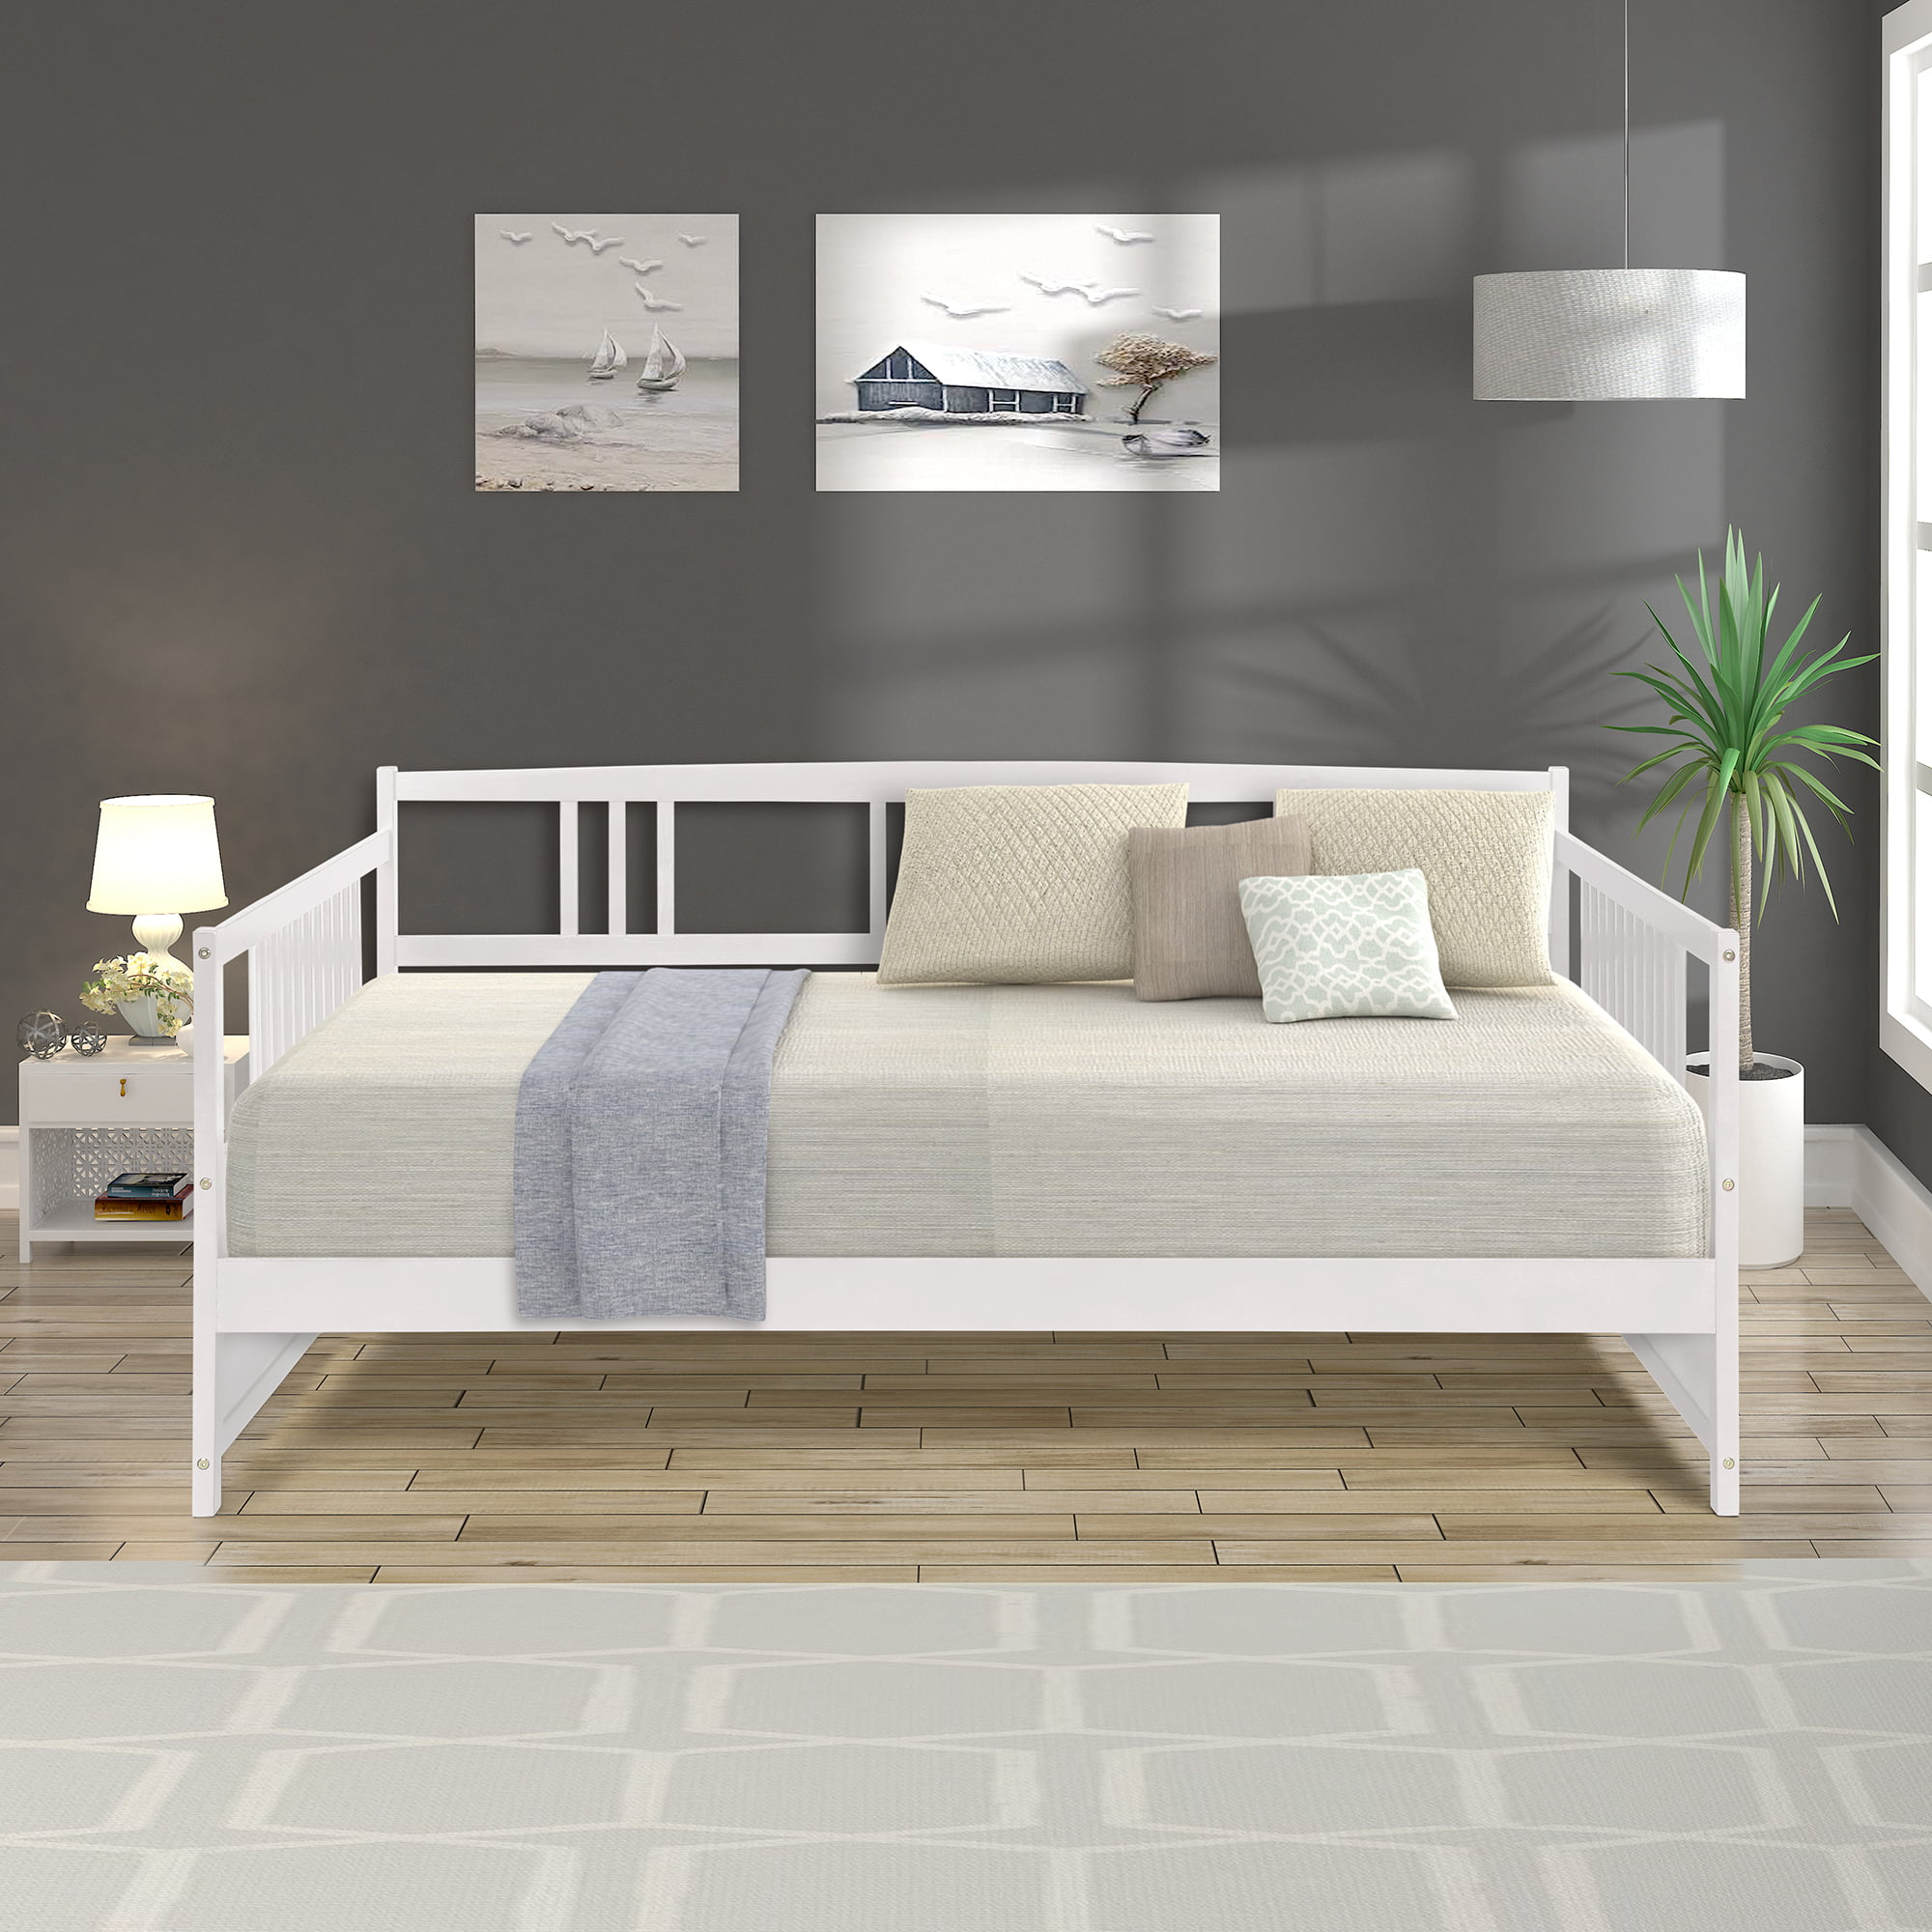 Image of: Full Size Wooden Daybed Frame Urhomepro Full Daybed Frame Heavy Duty Solid Wood Daybed With Wooden Slats For Adults Teens Kids Modern Bed Sofa For Living Room Guest Room 250 Lbs Capacity